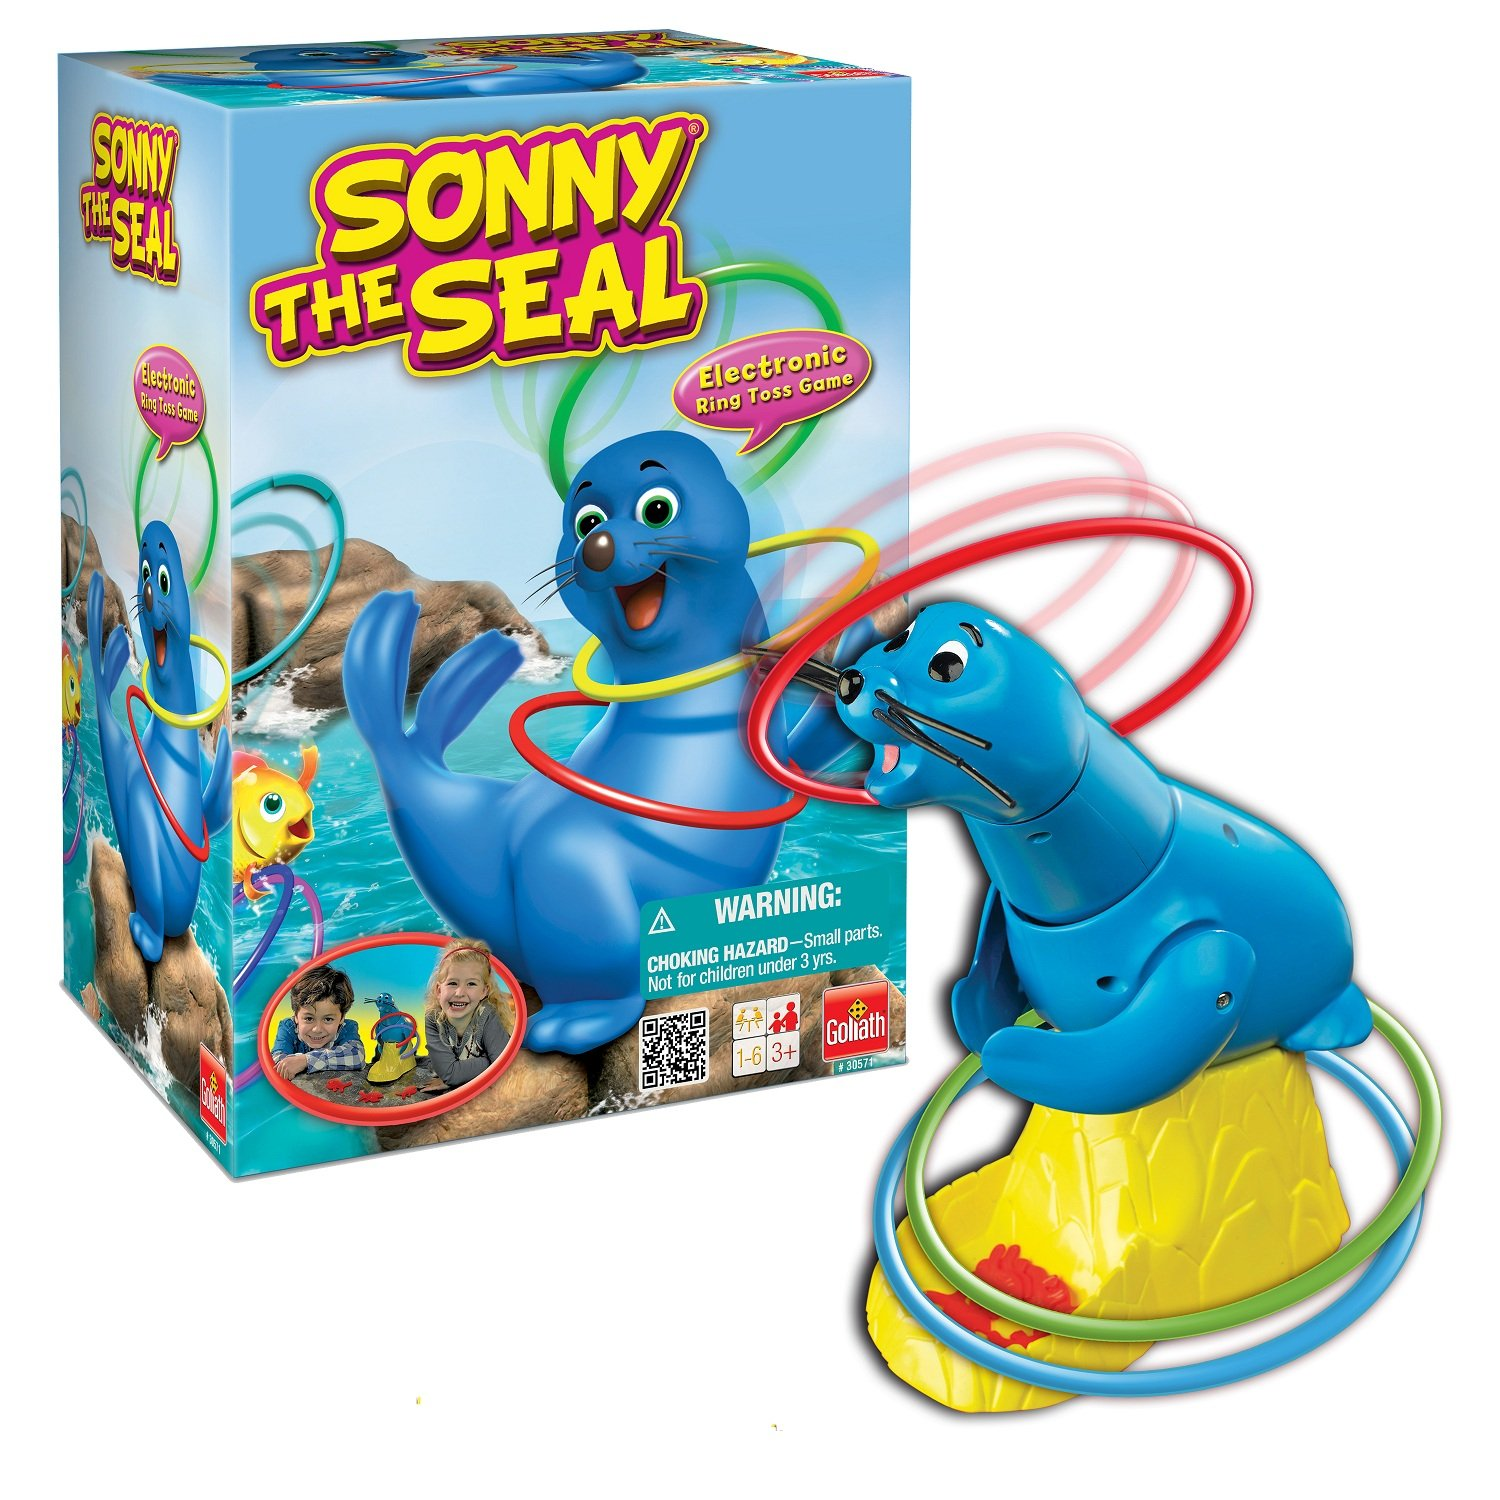 Amazon.com: Sonny The Seal Ring Toss Game: Toys & Games